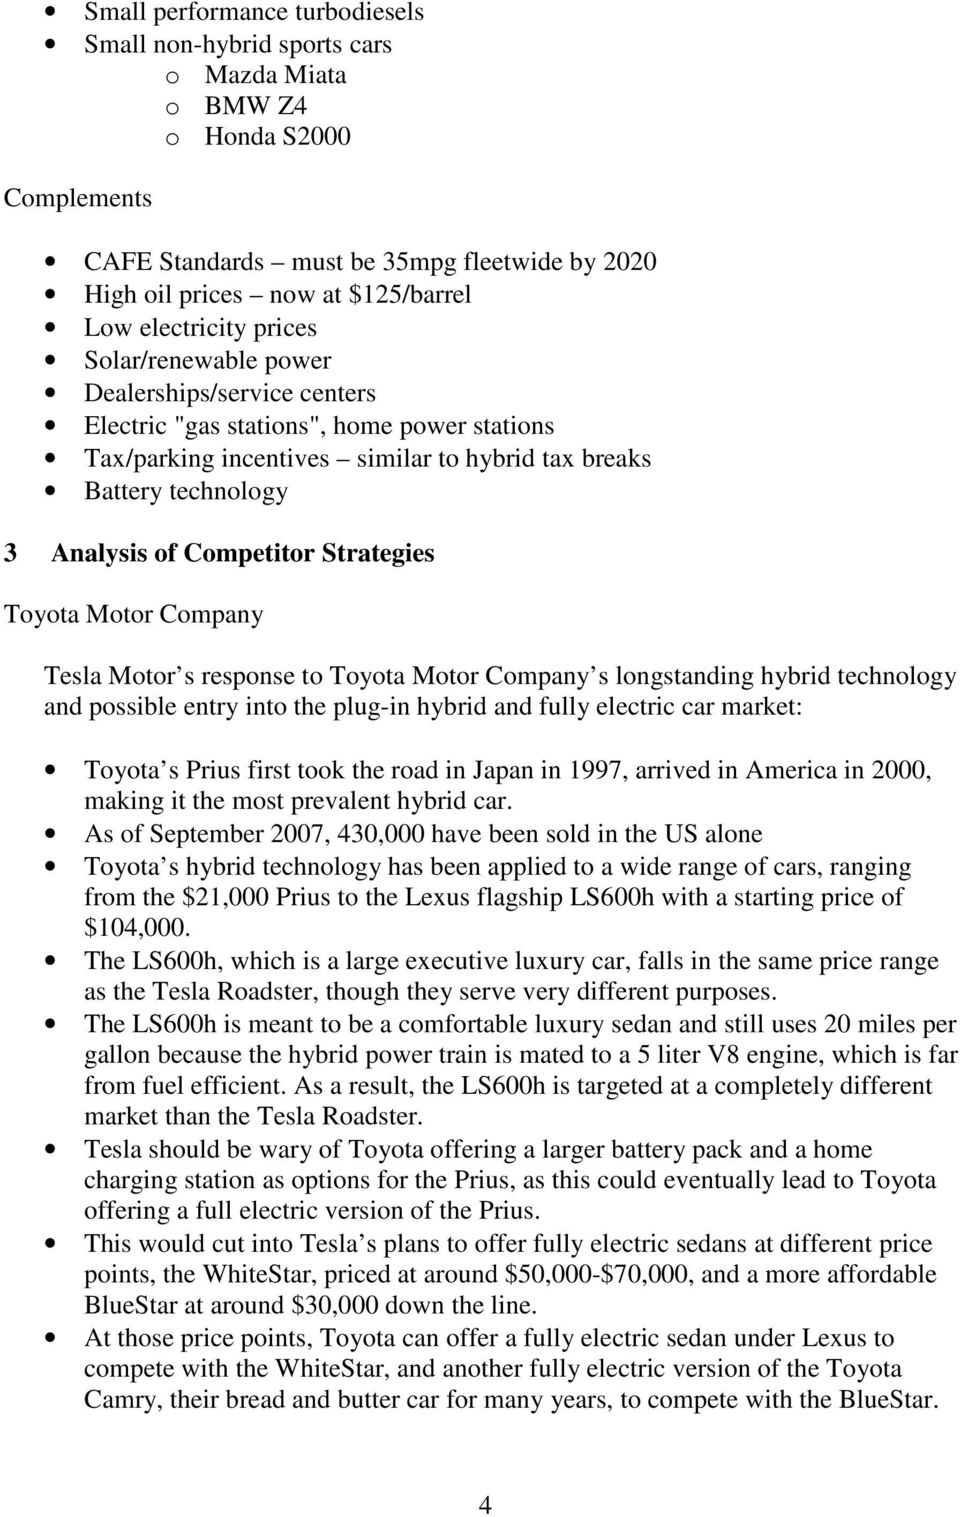 Competitor Strategies Toyota Motor Company Tesla Motor s response to Toyota Motor Company s longstanding hybrid technology and possible entry into the plug-in hybrid and fully electric car market: